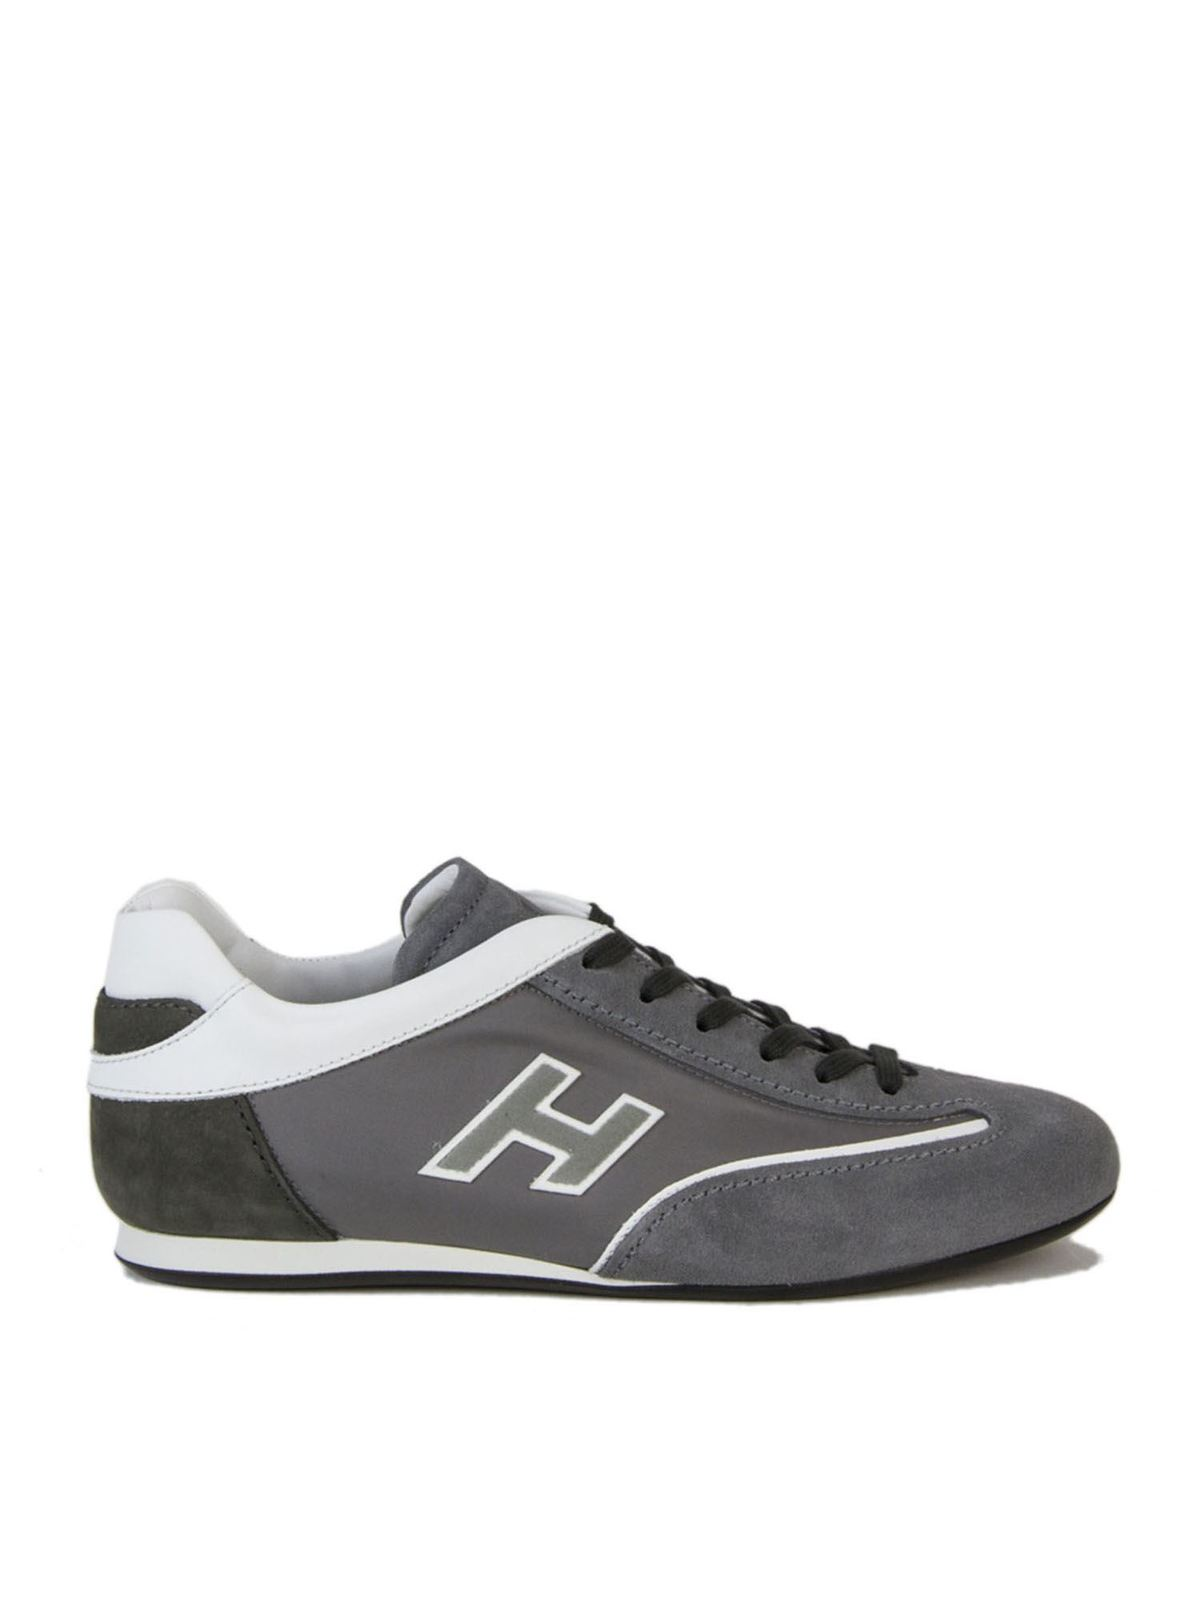 Trainers Hogan - Olympia sneakers in grey - HXM05201686P9V1RS0 ...